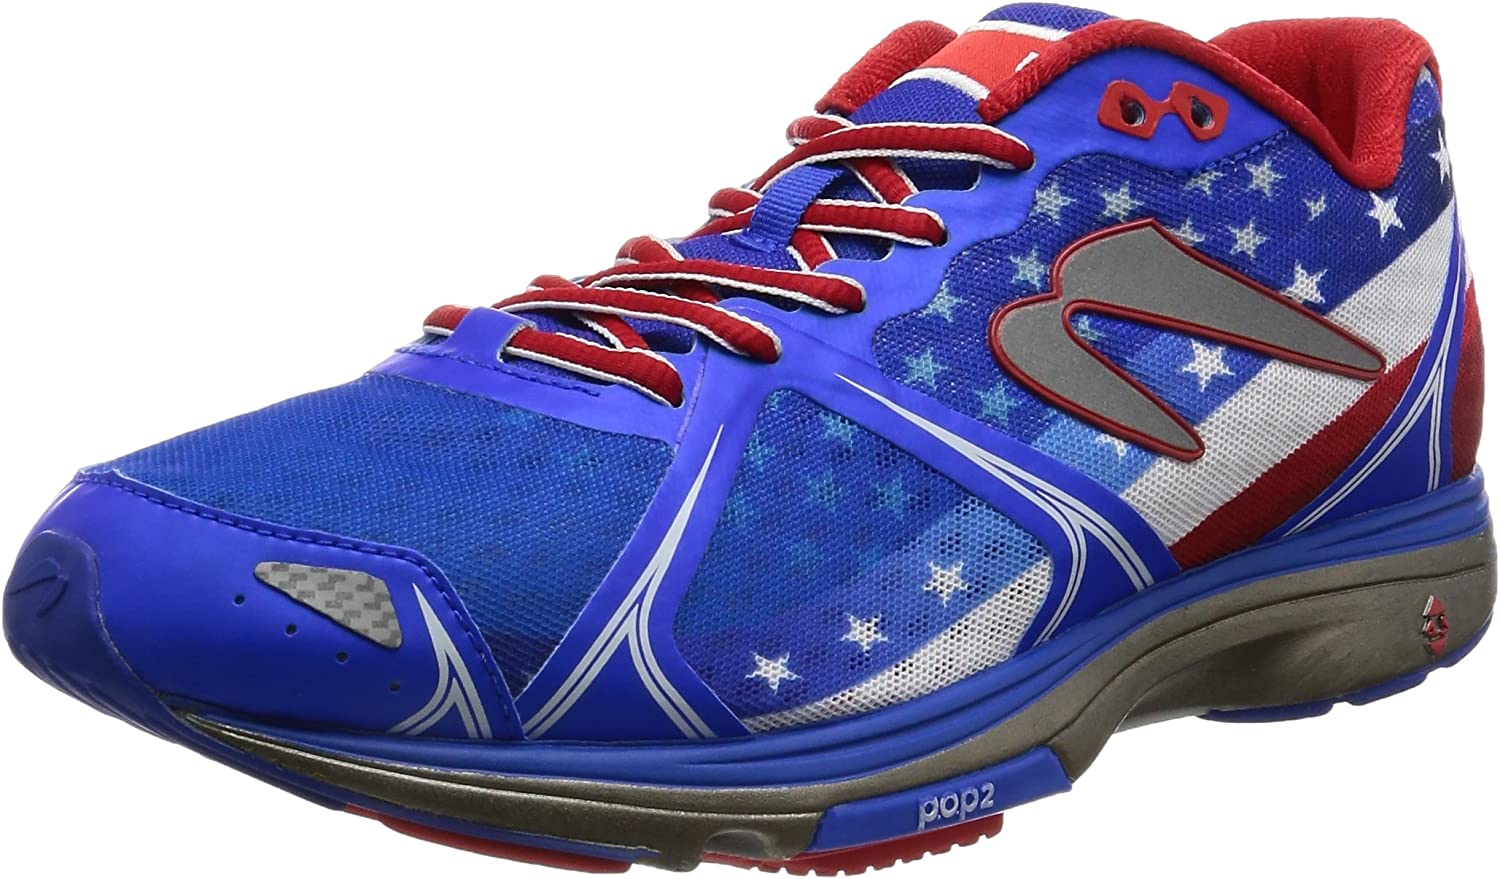 Mens Leisure Sports Shoes Patriotic USA Blue Red Line Fashion Running Shoe